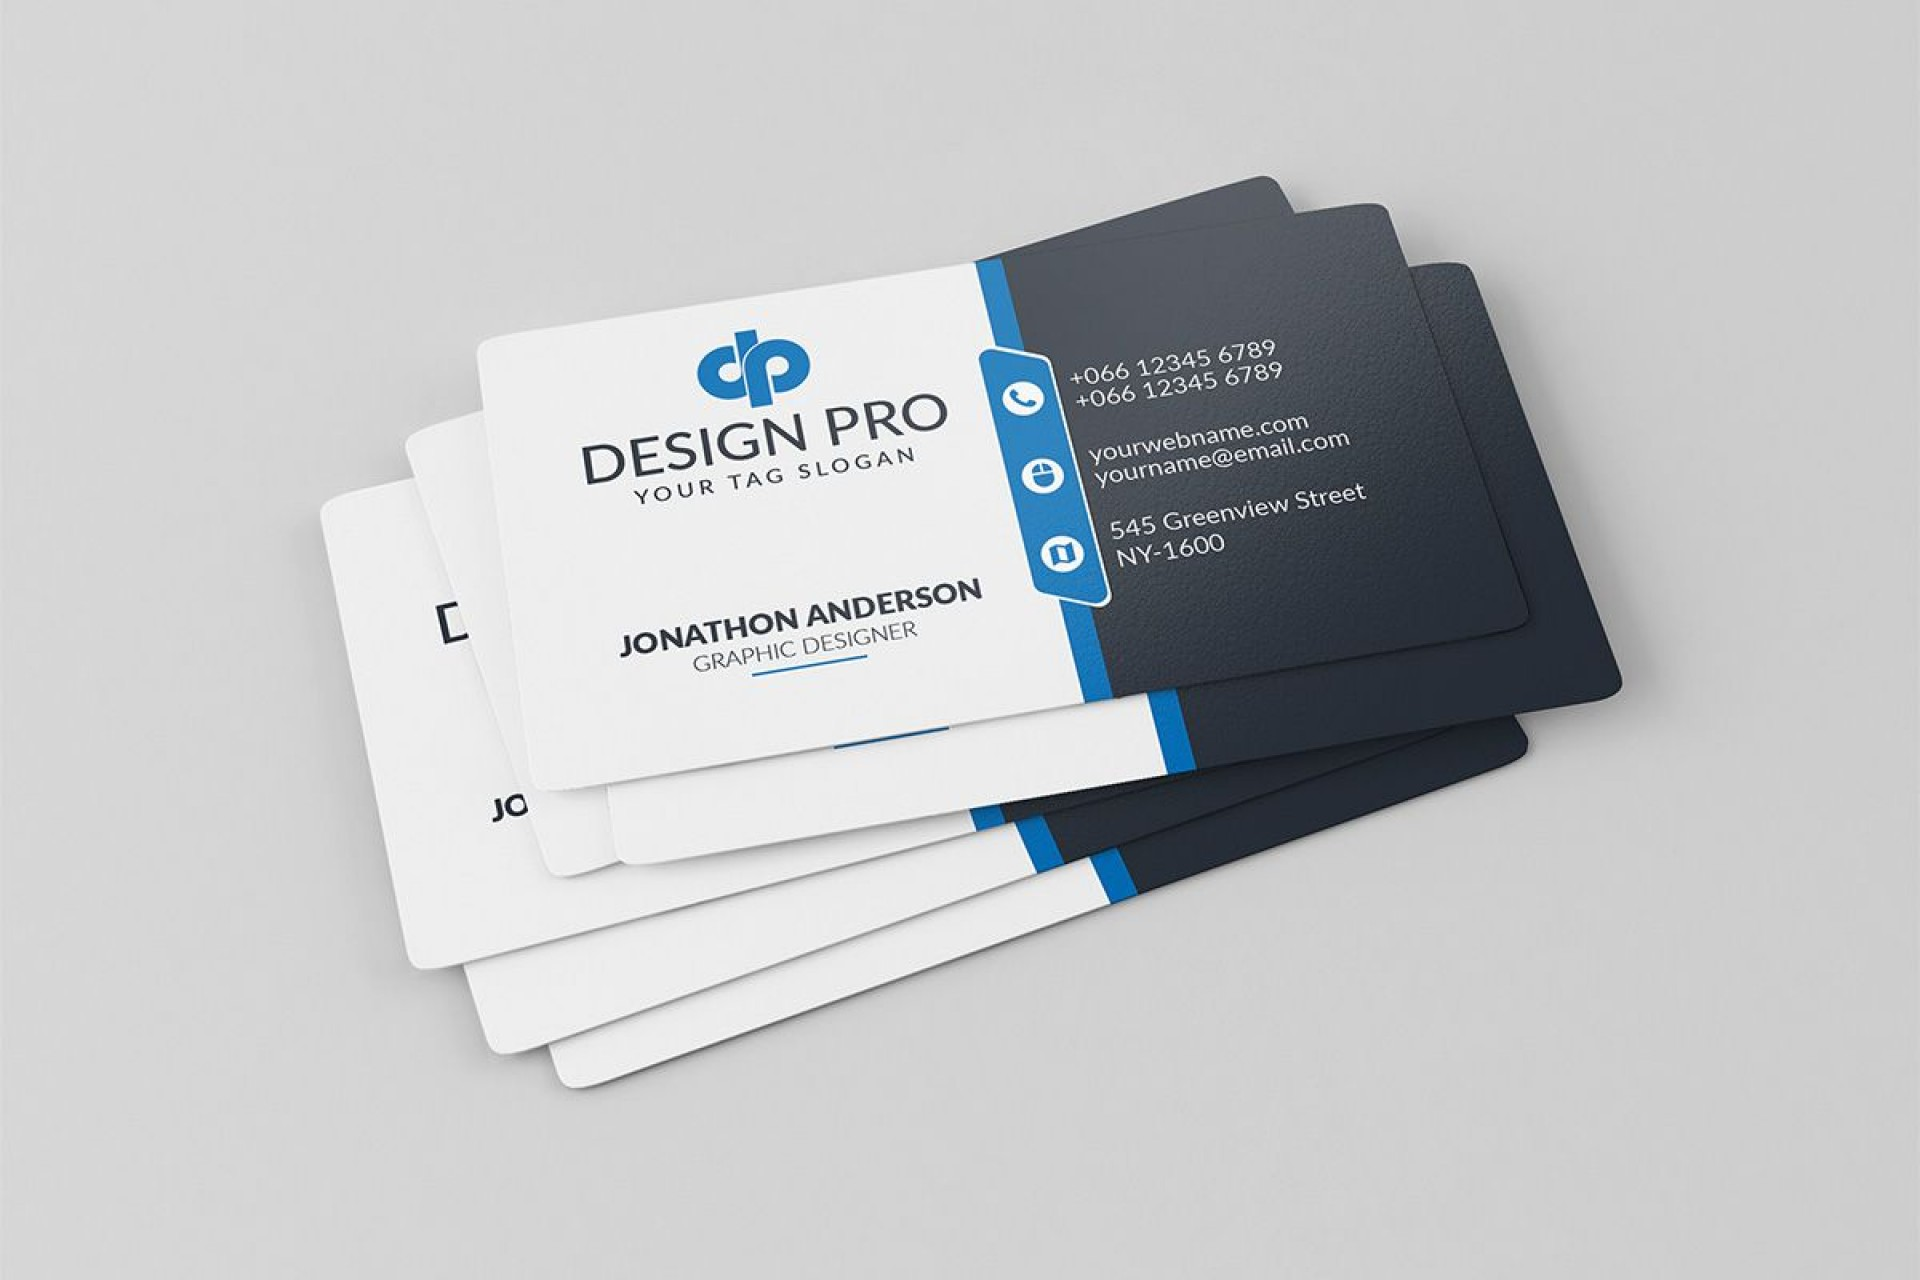 002 Astounding Blank Busines Card Template Psd Free Download Idea  Photoshop1920